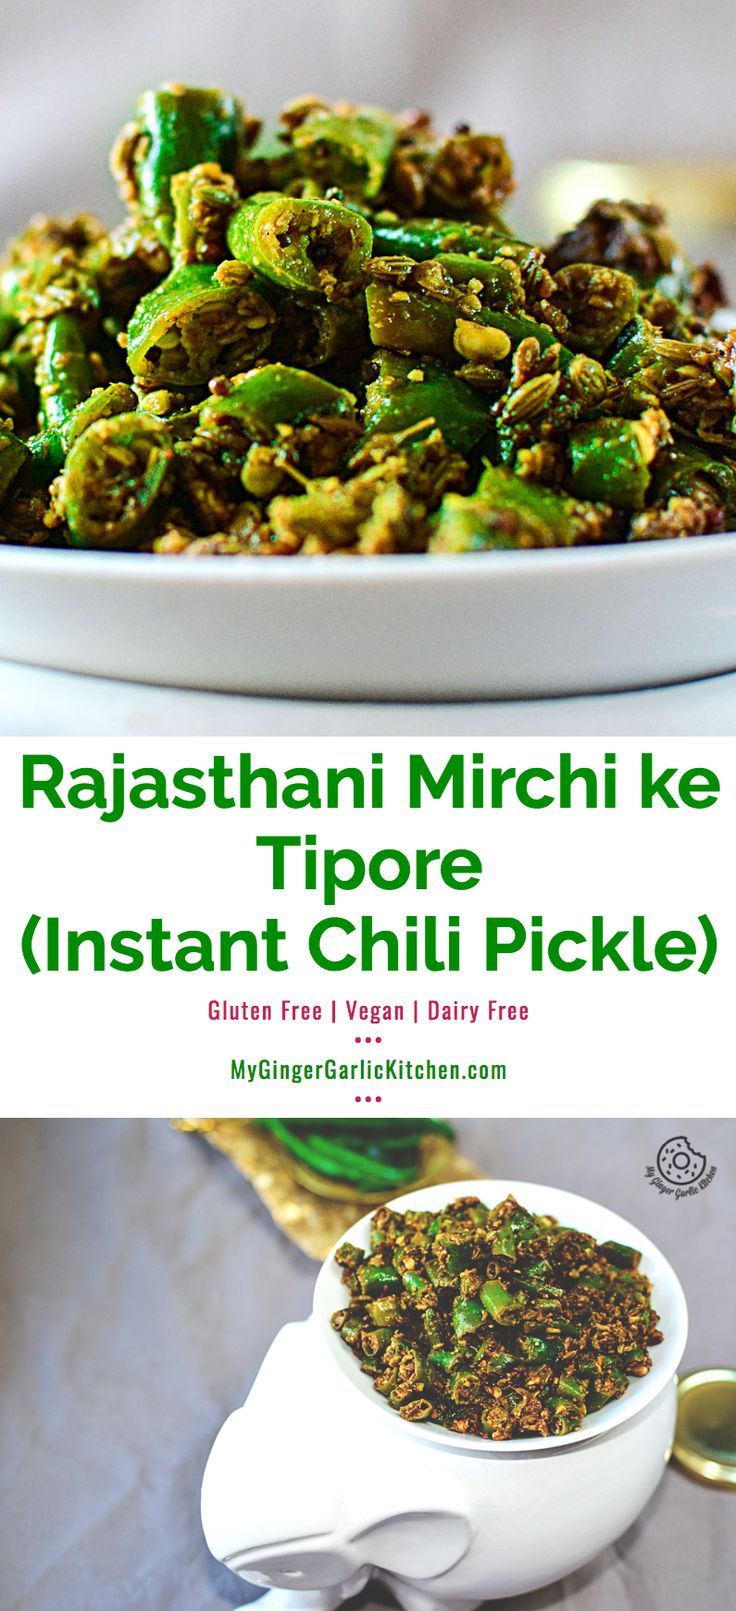 124 best Indian pickles images on Pinterest | Cook, Indian recipes ...